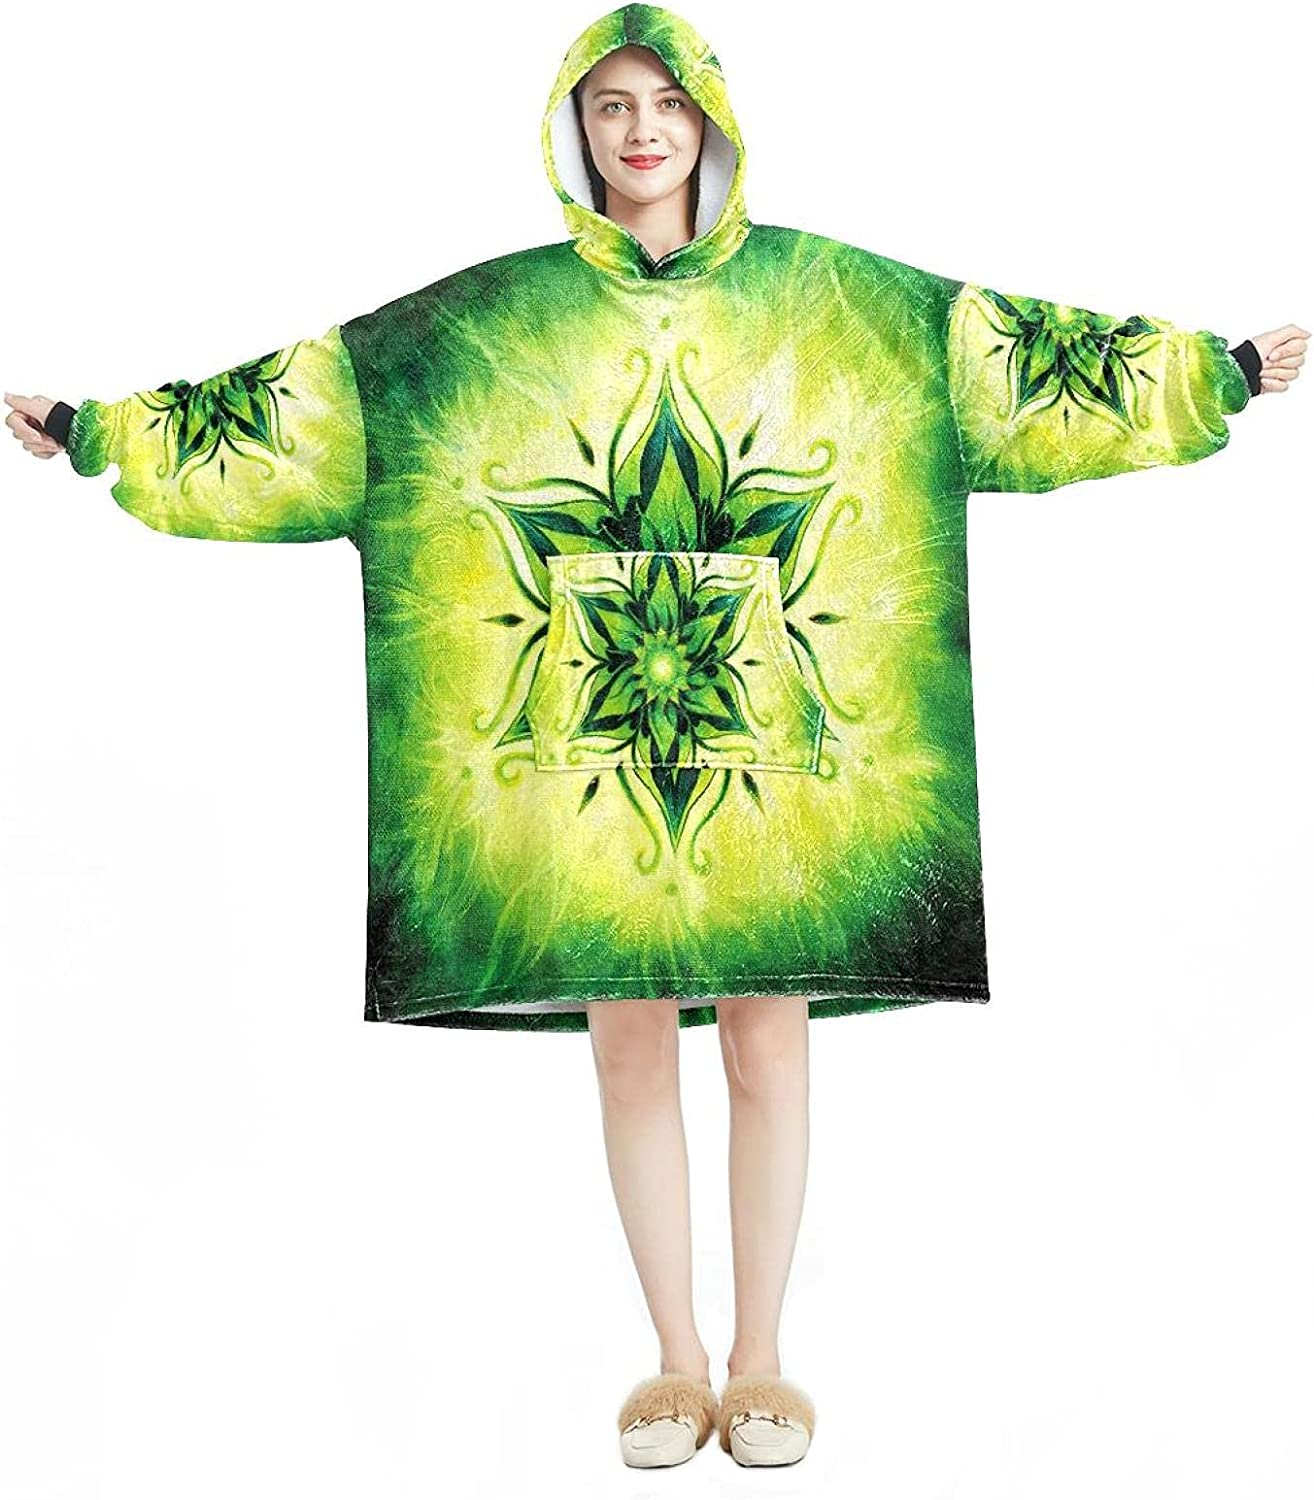 Women's Bathrobes Home Clothes Long-Sleeved Robe Mail Latest item order cheap A Coats Walks